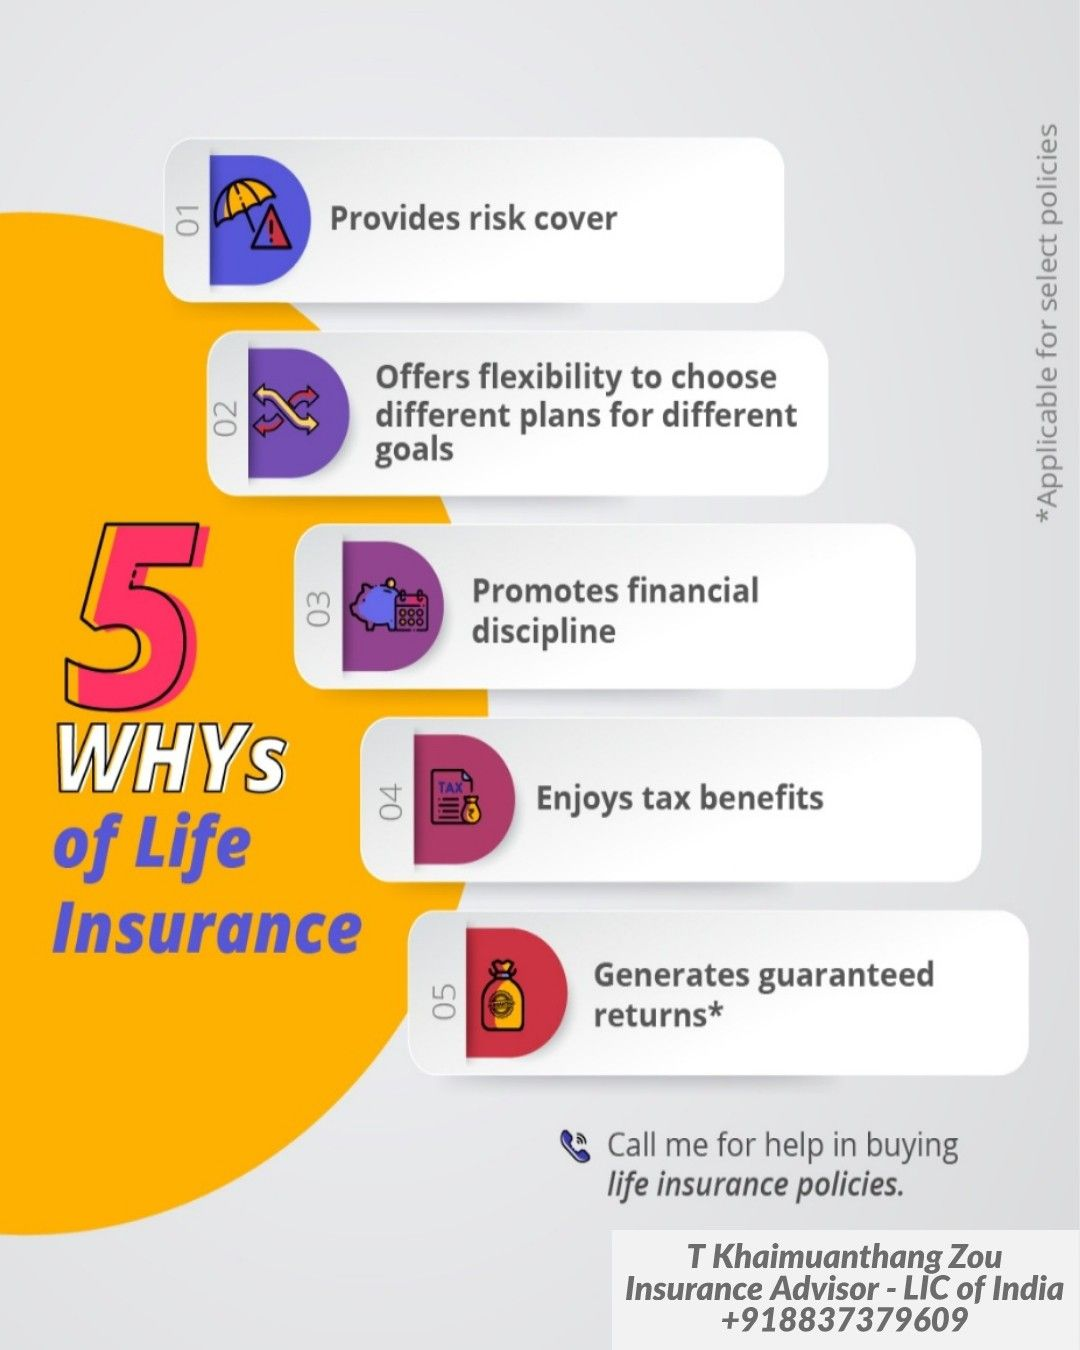 LifeInsurance insurancepolicy financialplanning